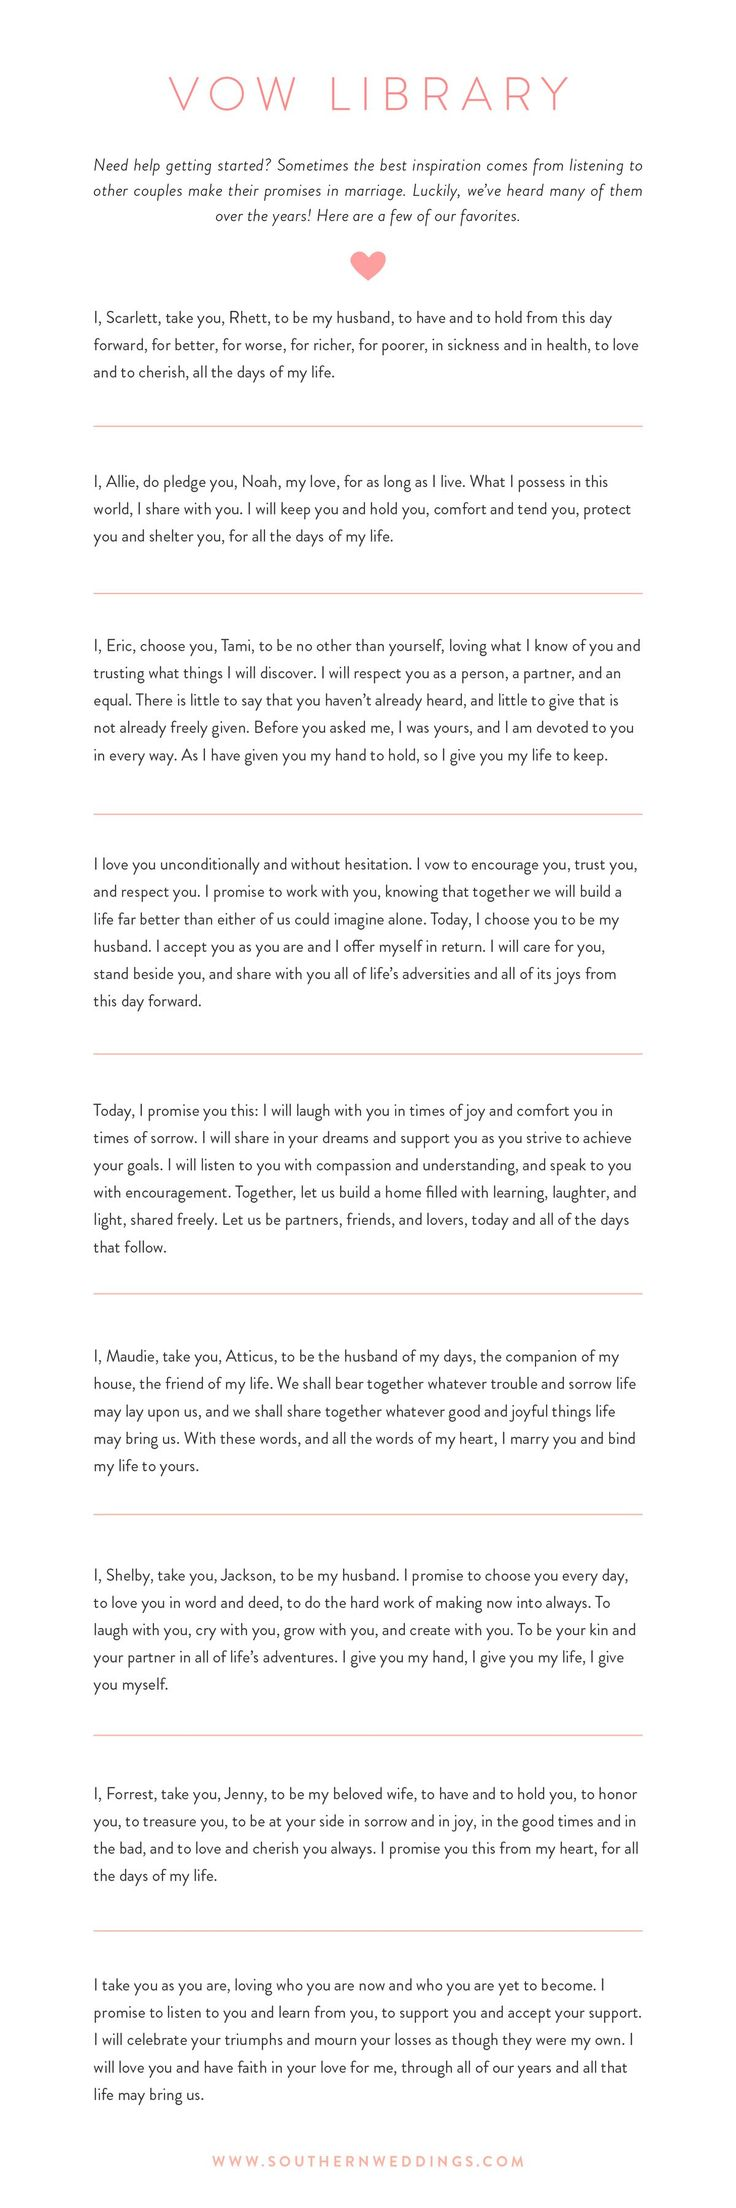 bride wedding vows 10 best photos - wedding vows - cuteweddingideas.com